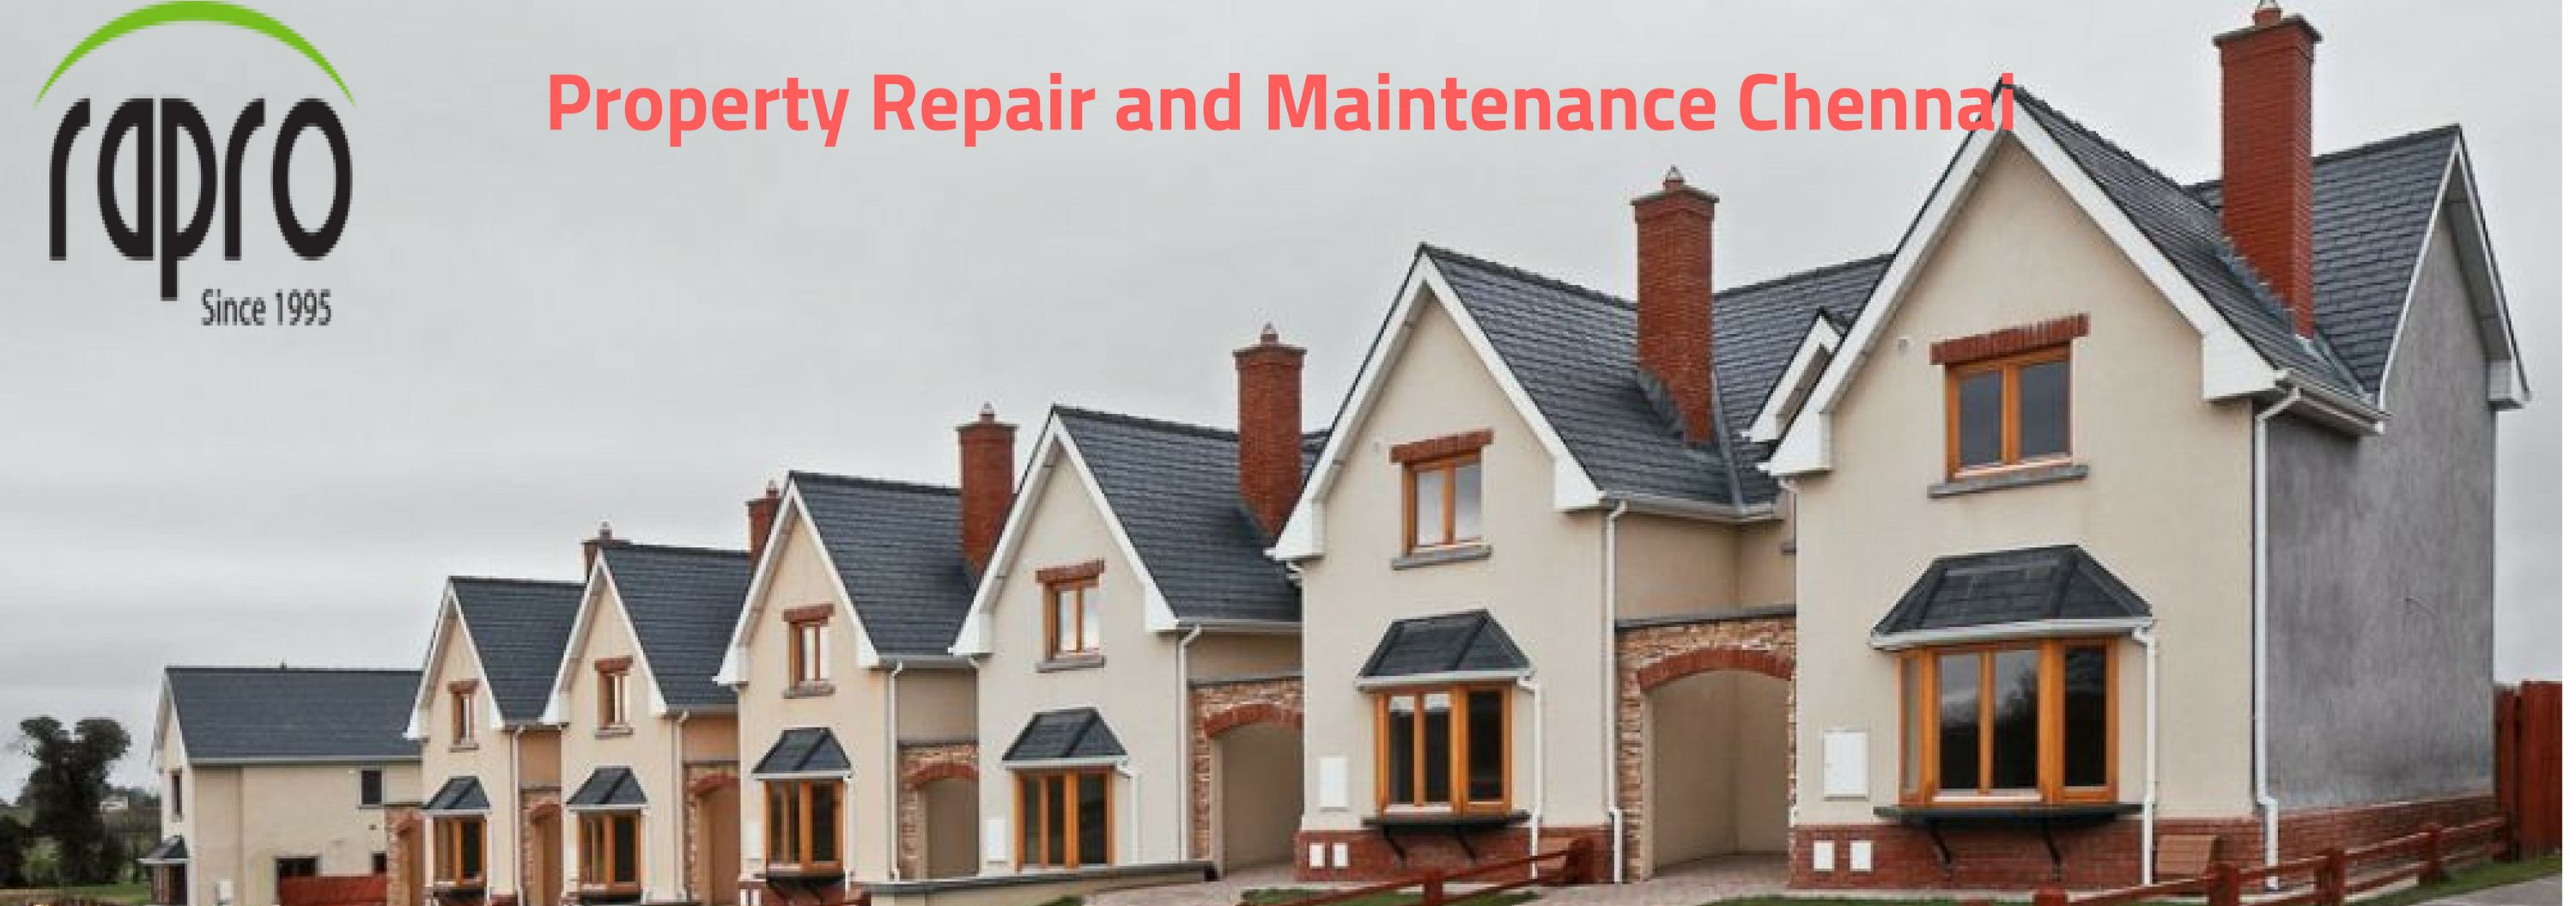 Living out of India? Want to someone to look after your property. Rajam Property Management offers #propertyrepair and #maintenance services in #Chennai.